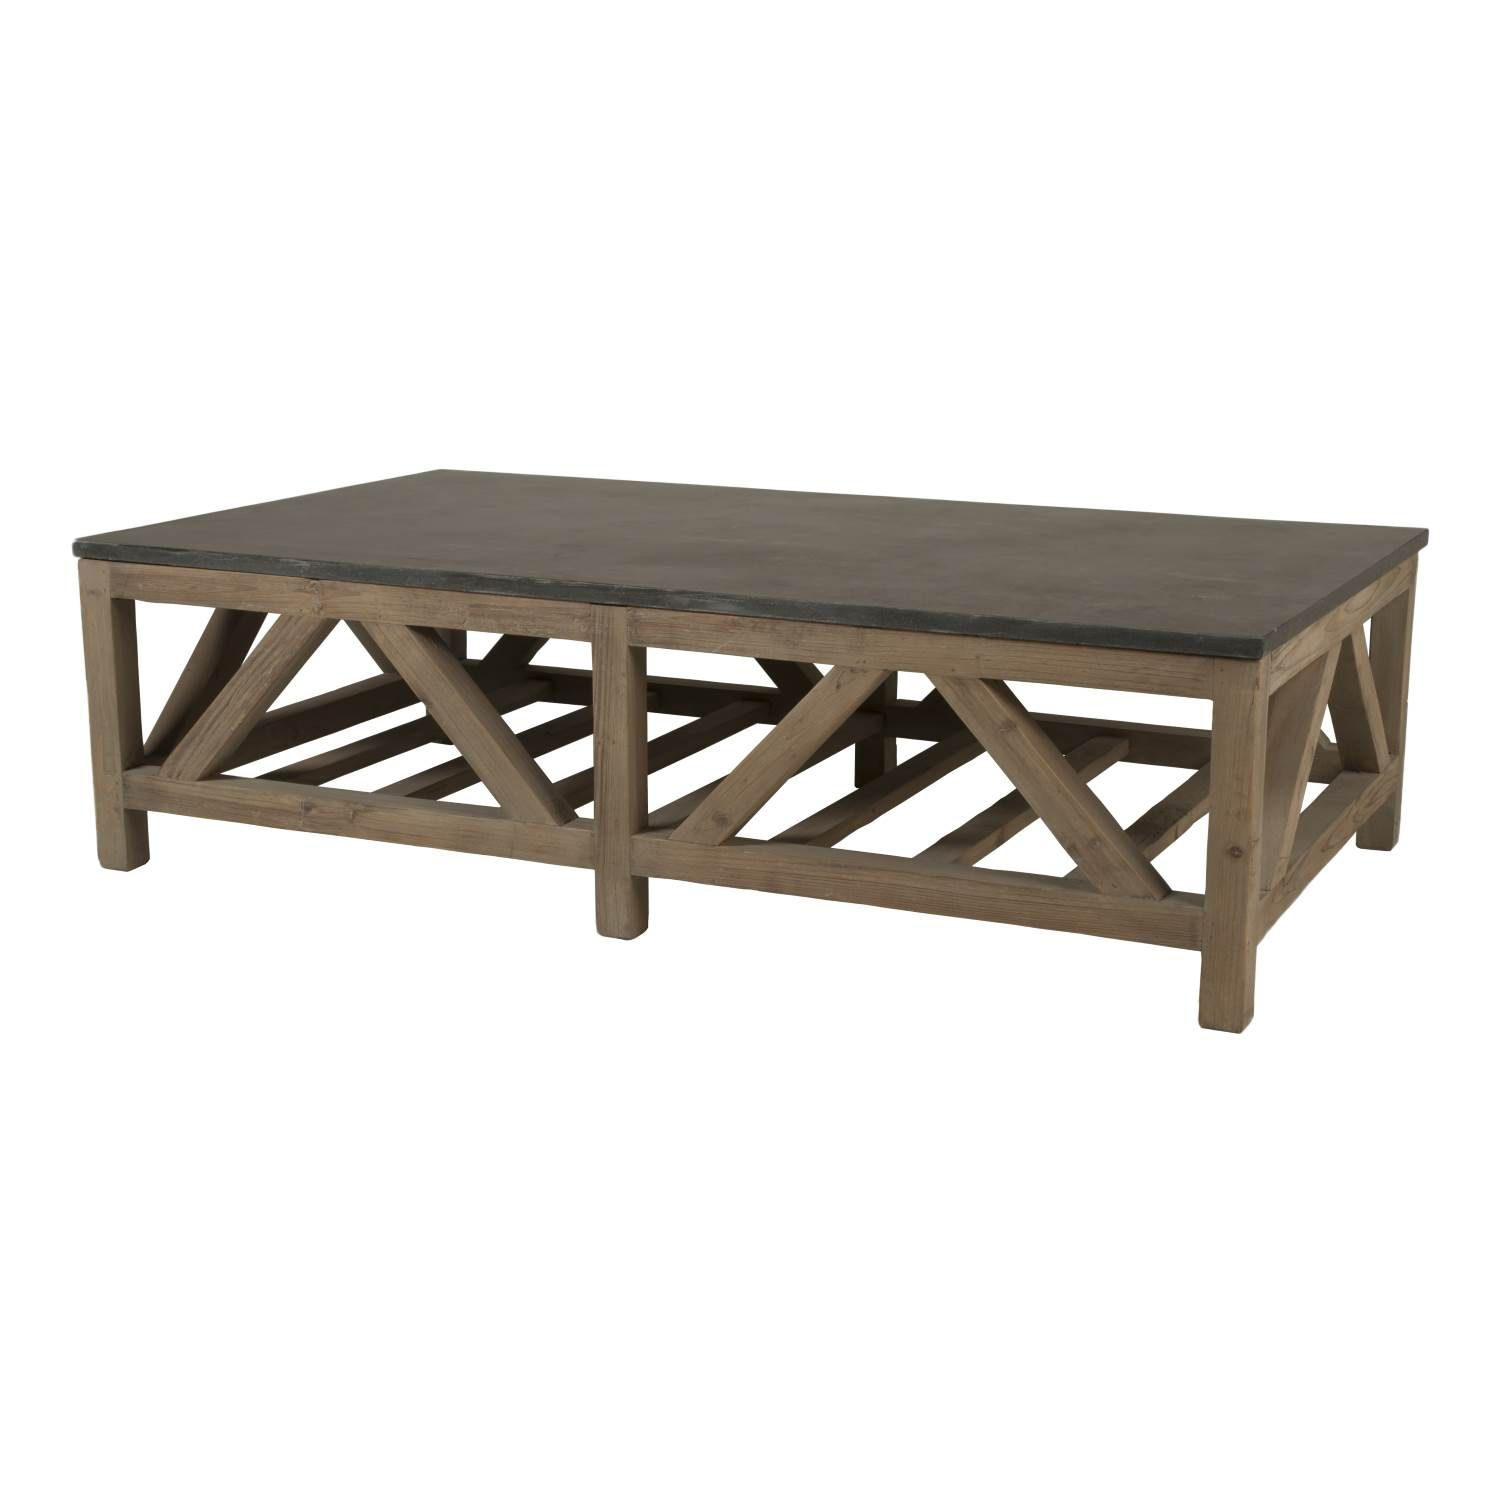 Blue stone coffee table formal living pinterest stone coffee blue stone coffee table geotapseo Image collections